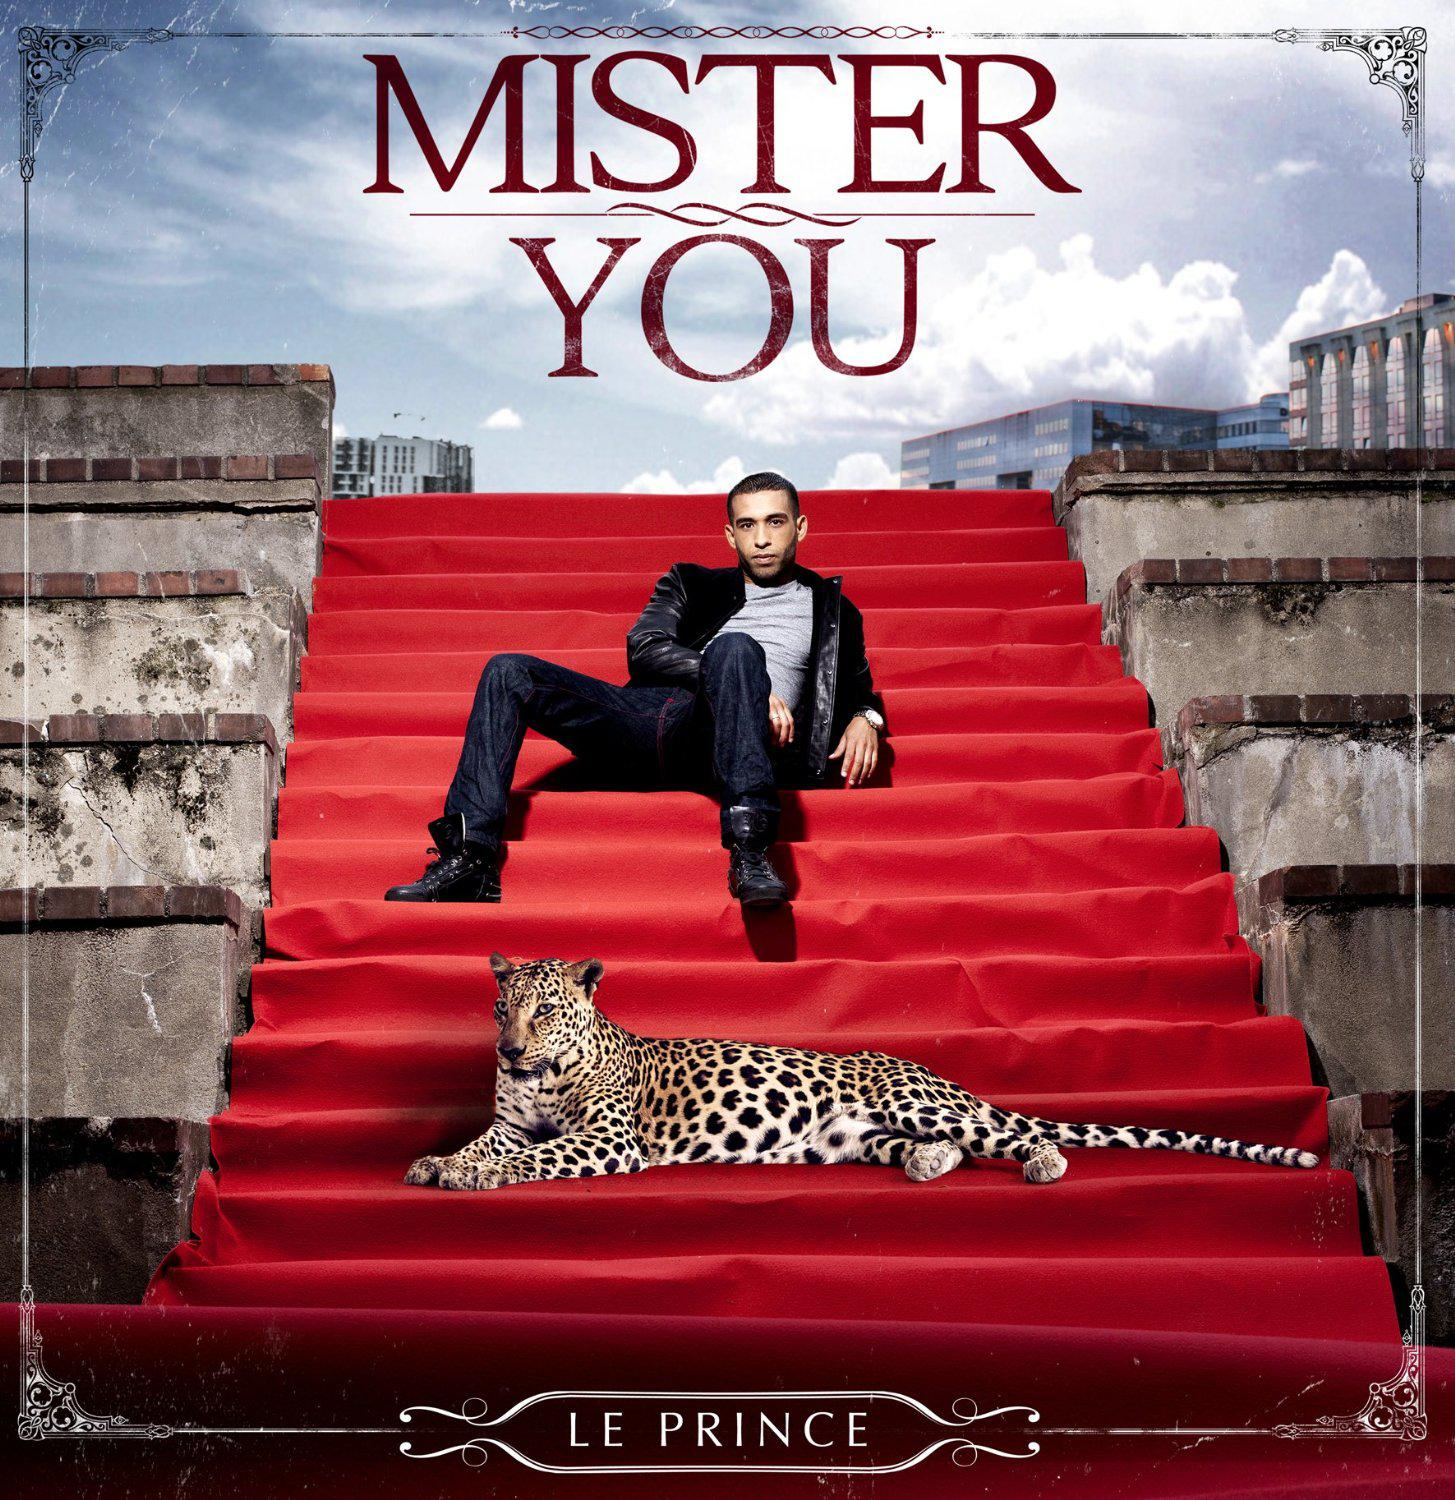 Mister You - Le Prince (2014)